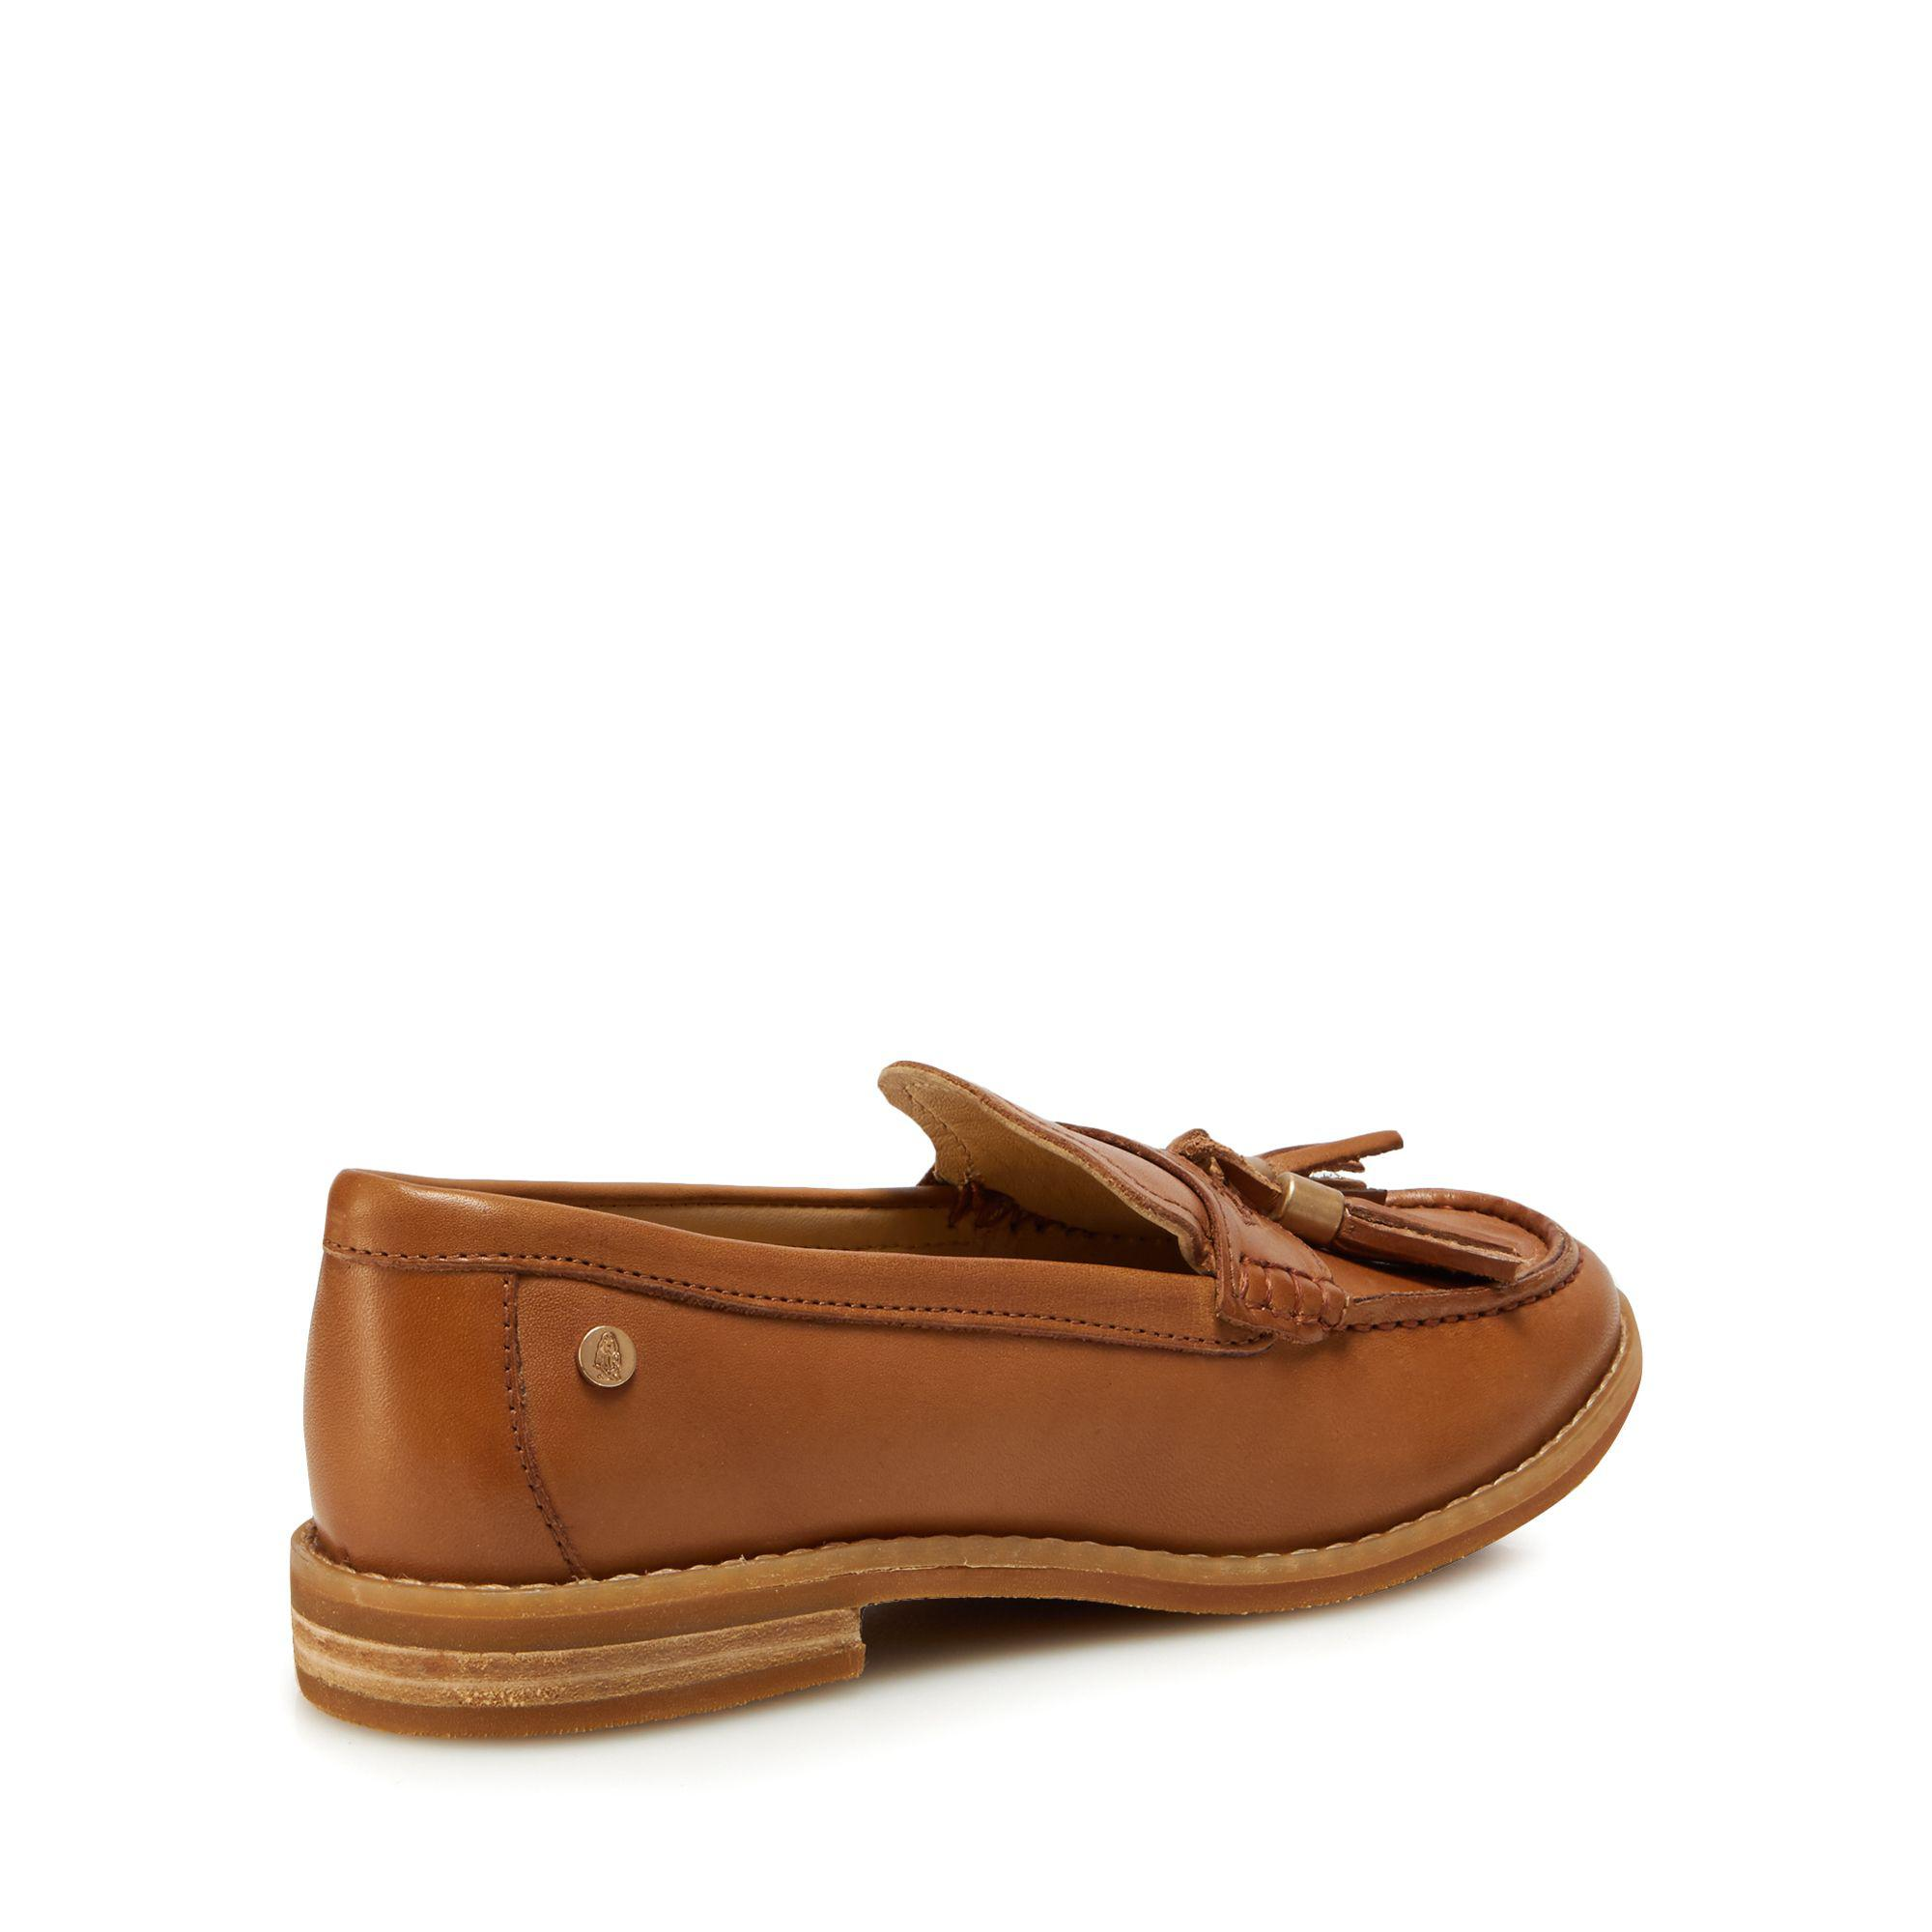 a94bdc108d0 Hush Puppies Tan Leather  chardon Penny  Loafers in Brown - Lyst